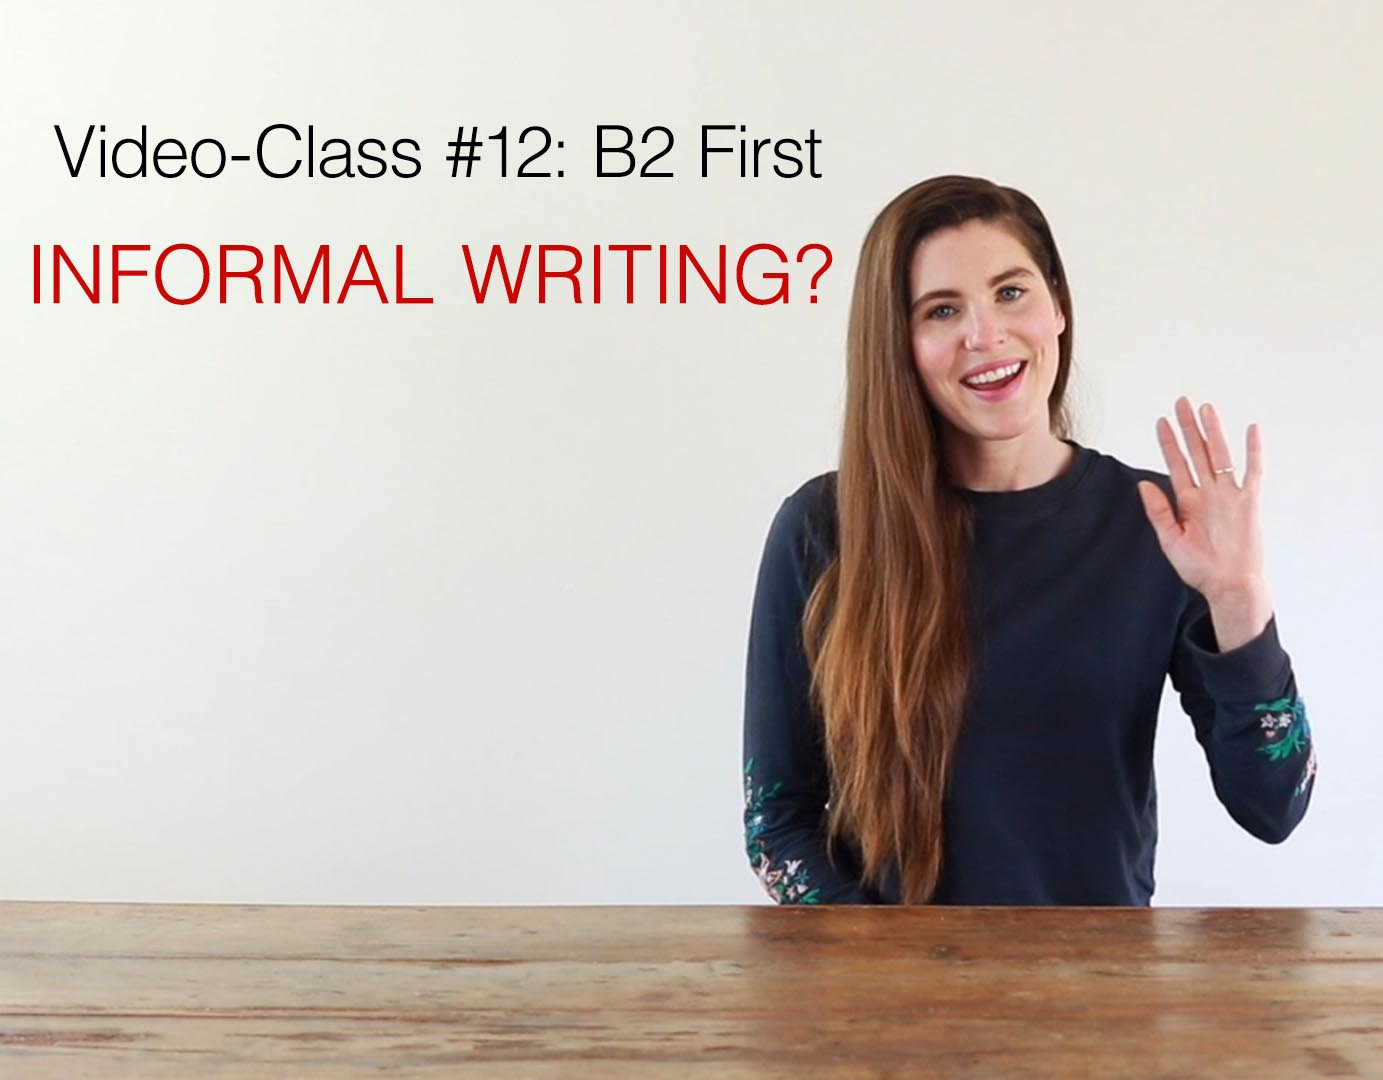 B2 First Video clase 12 - AC Ingles